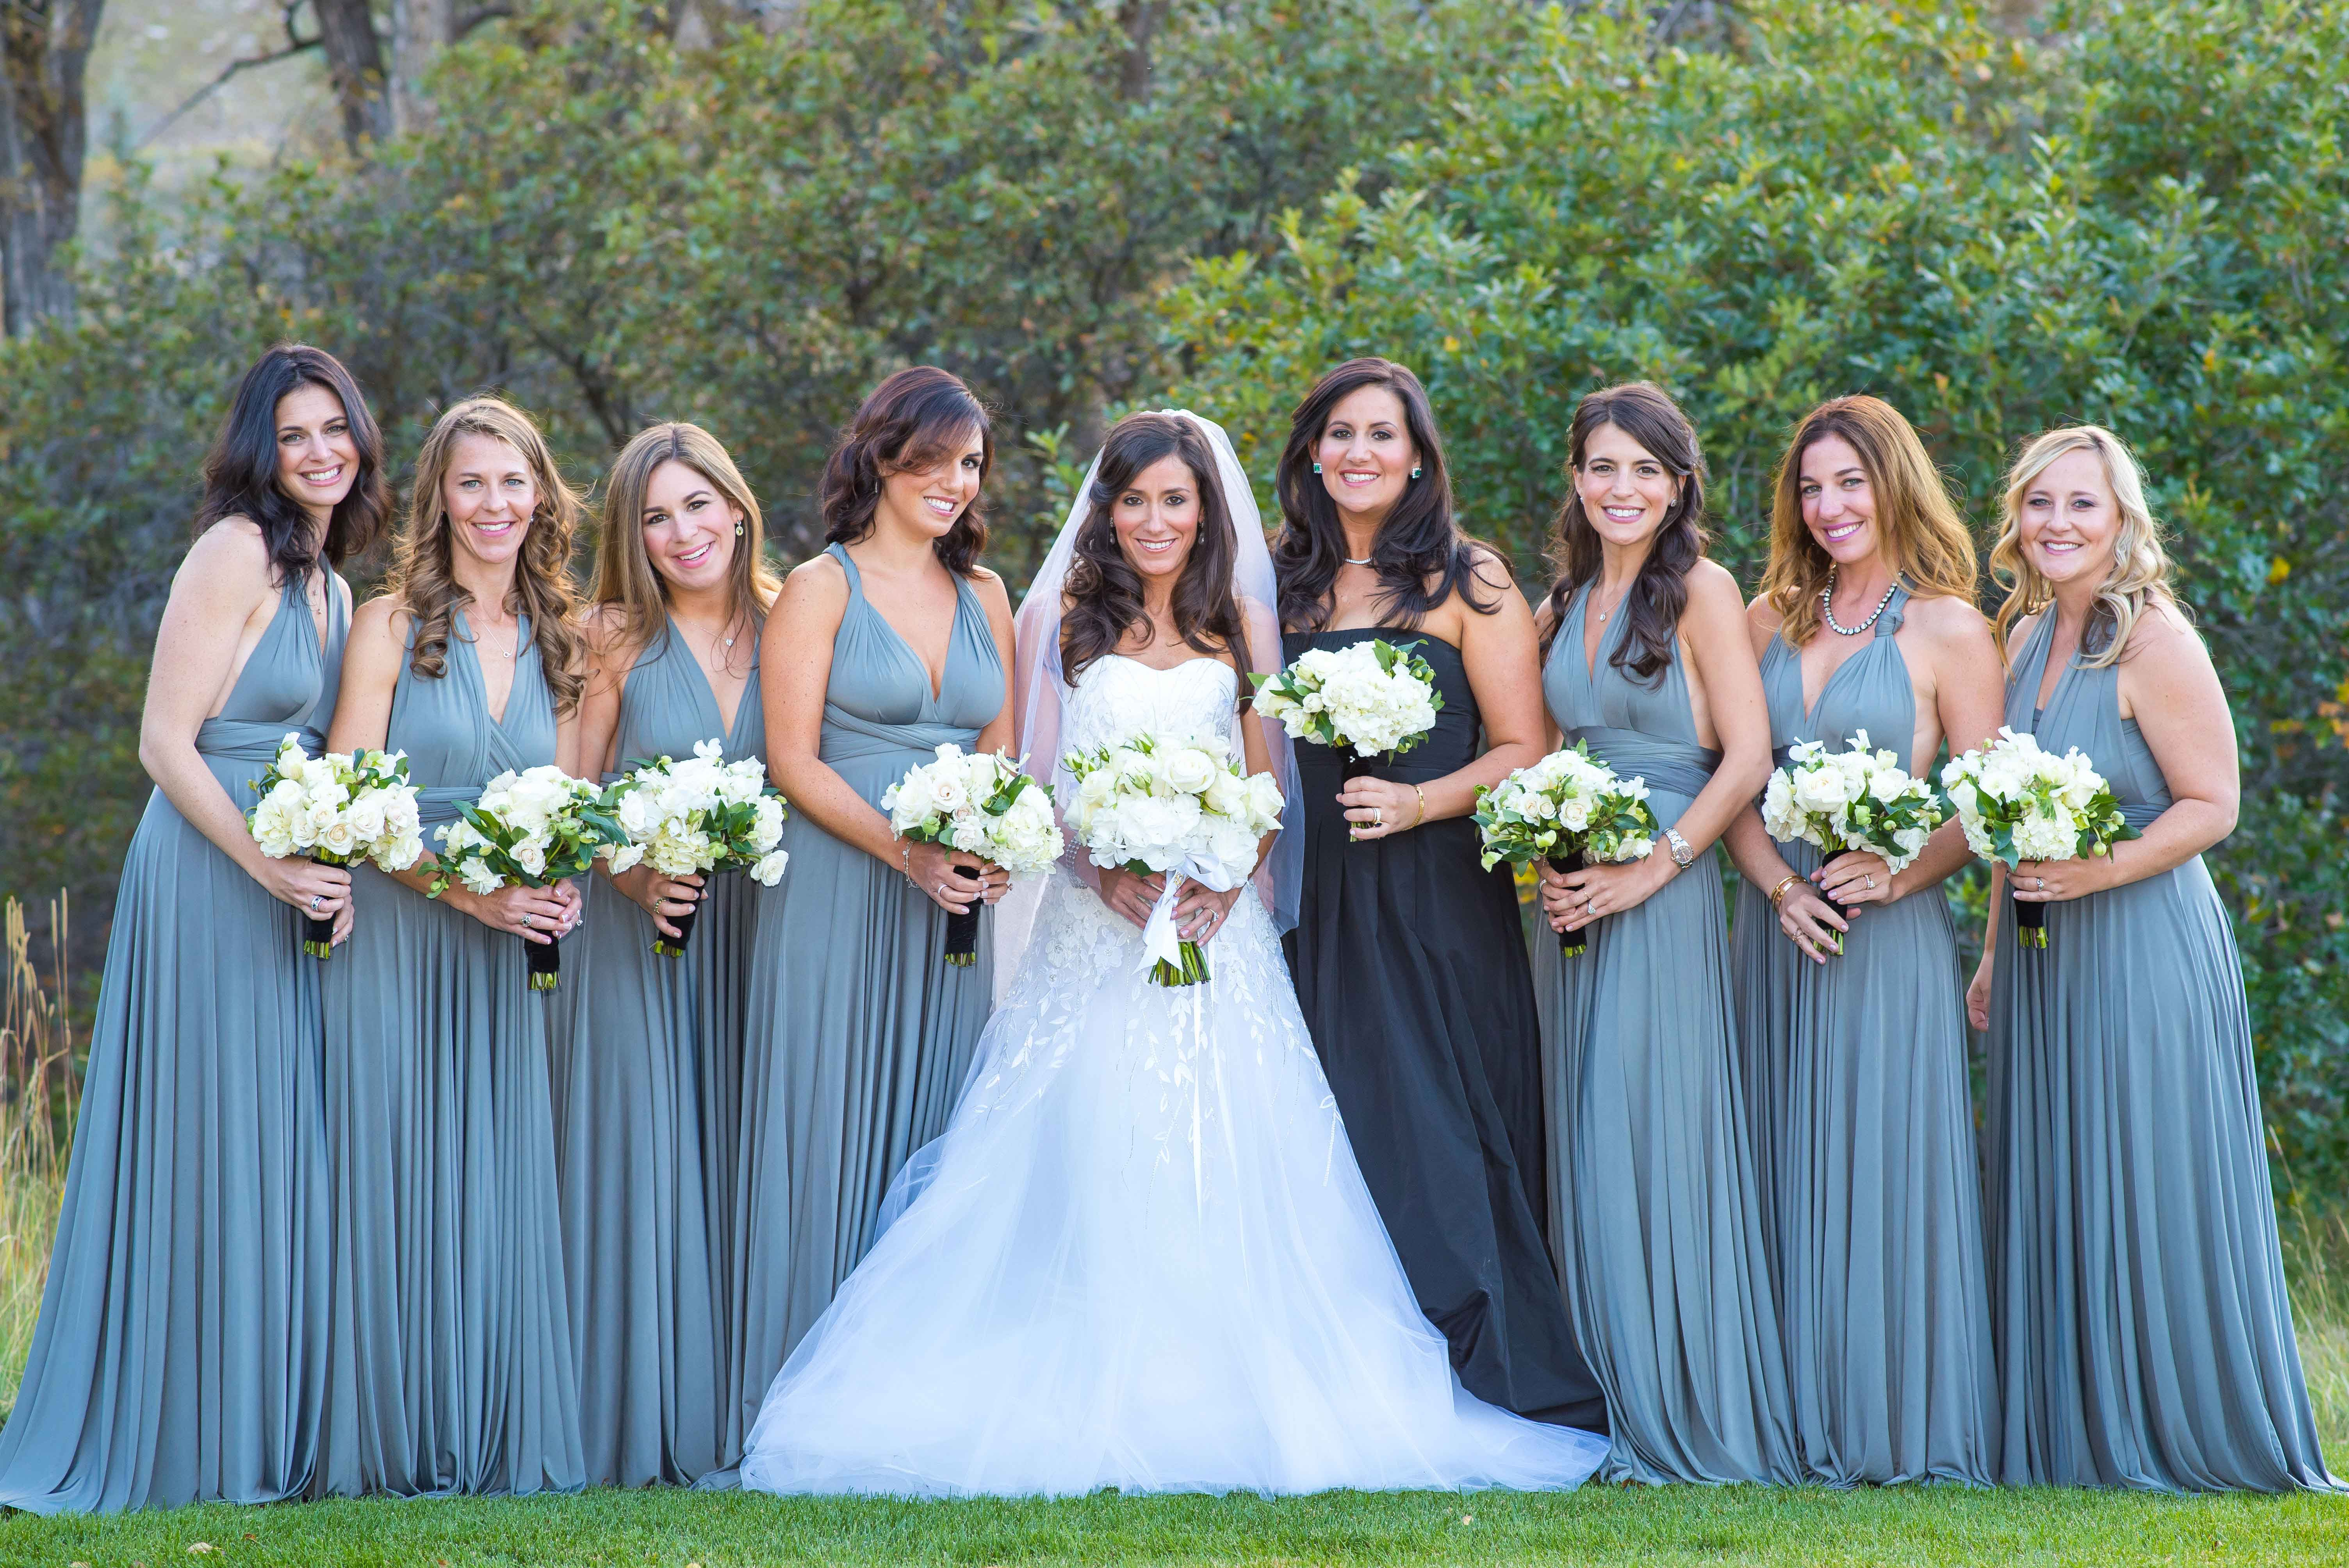 6 different bridesmaid dress concepts to make your maid of honor photo by brett butterstein photography floral event design by bella flora of dallas planning design by diamond affairs special events ombrellifo Images